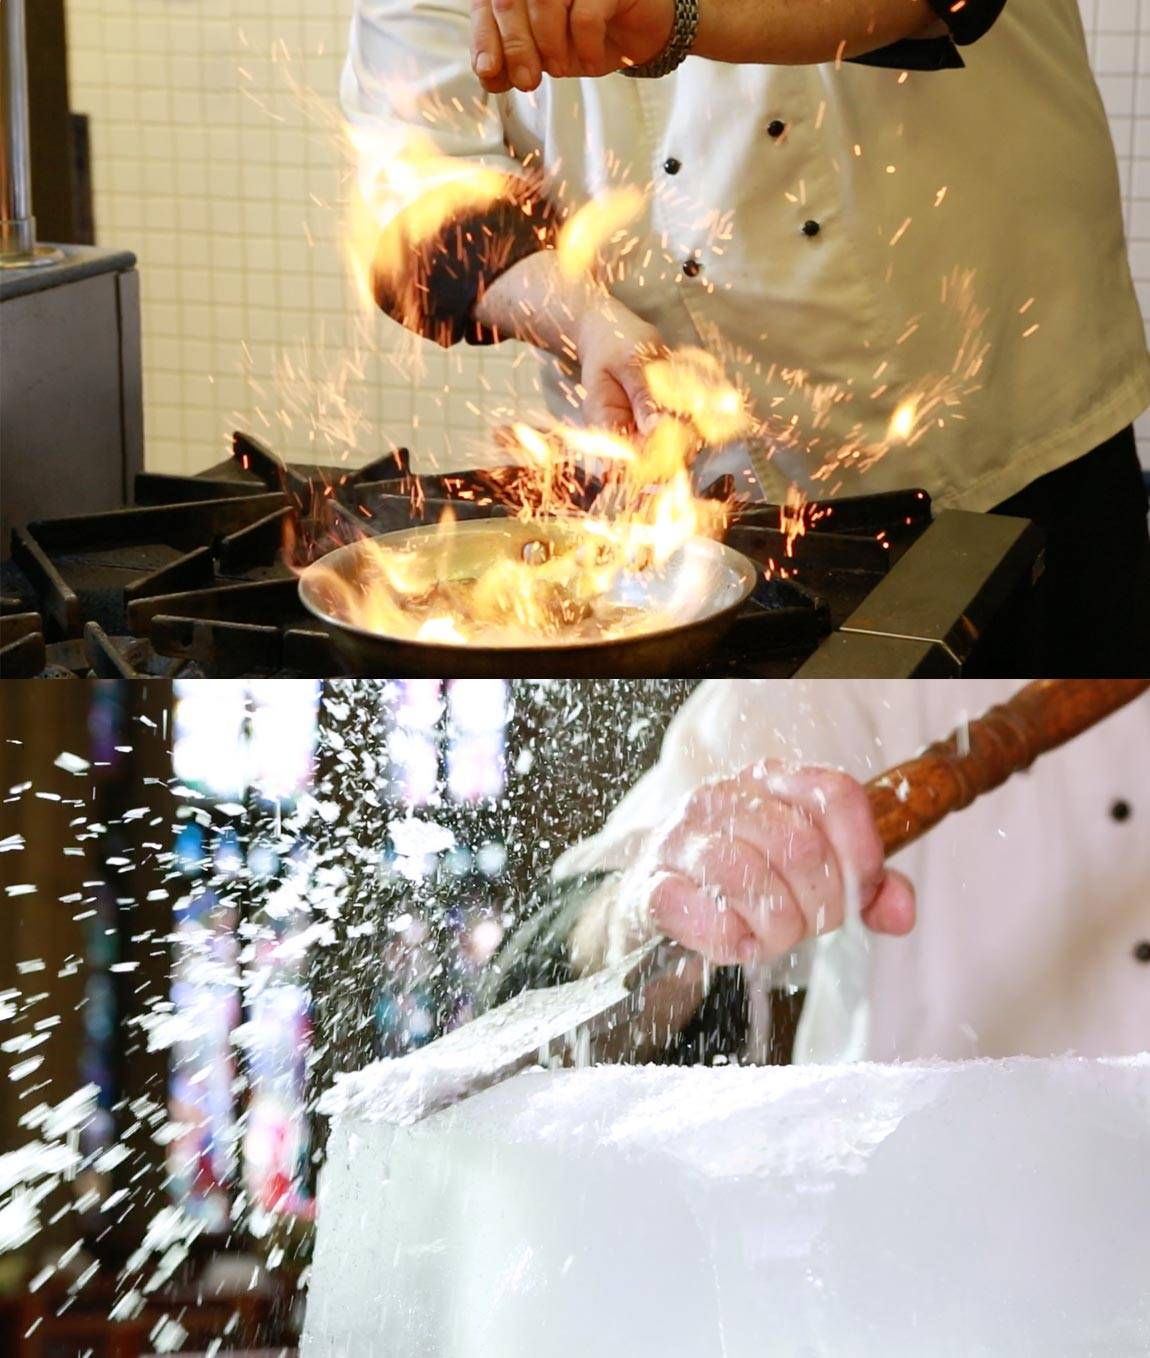 Hot and Cold making Bananas Foster and ice carving